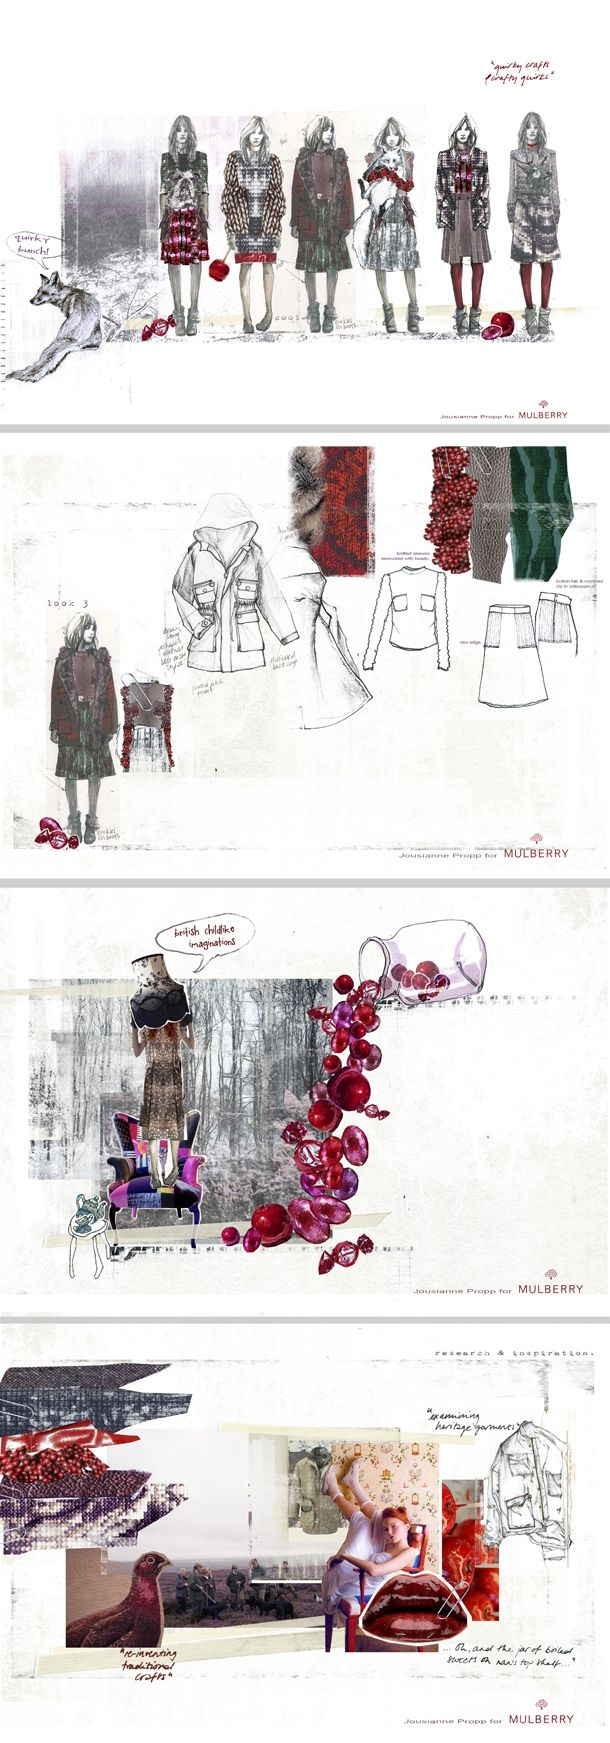 ARTS THREAD - Jousianne Propp - BFC Mulberry Design Competition 2012